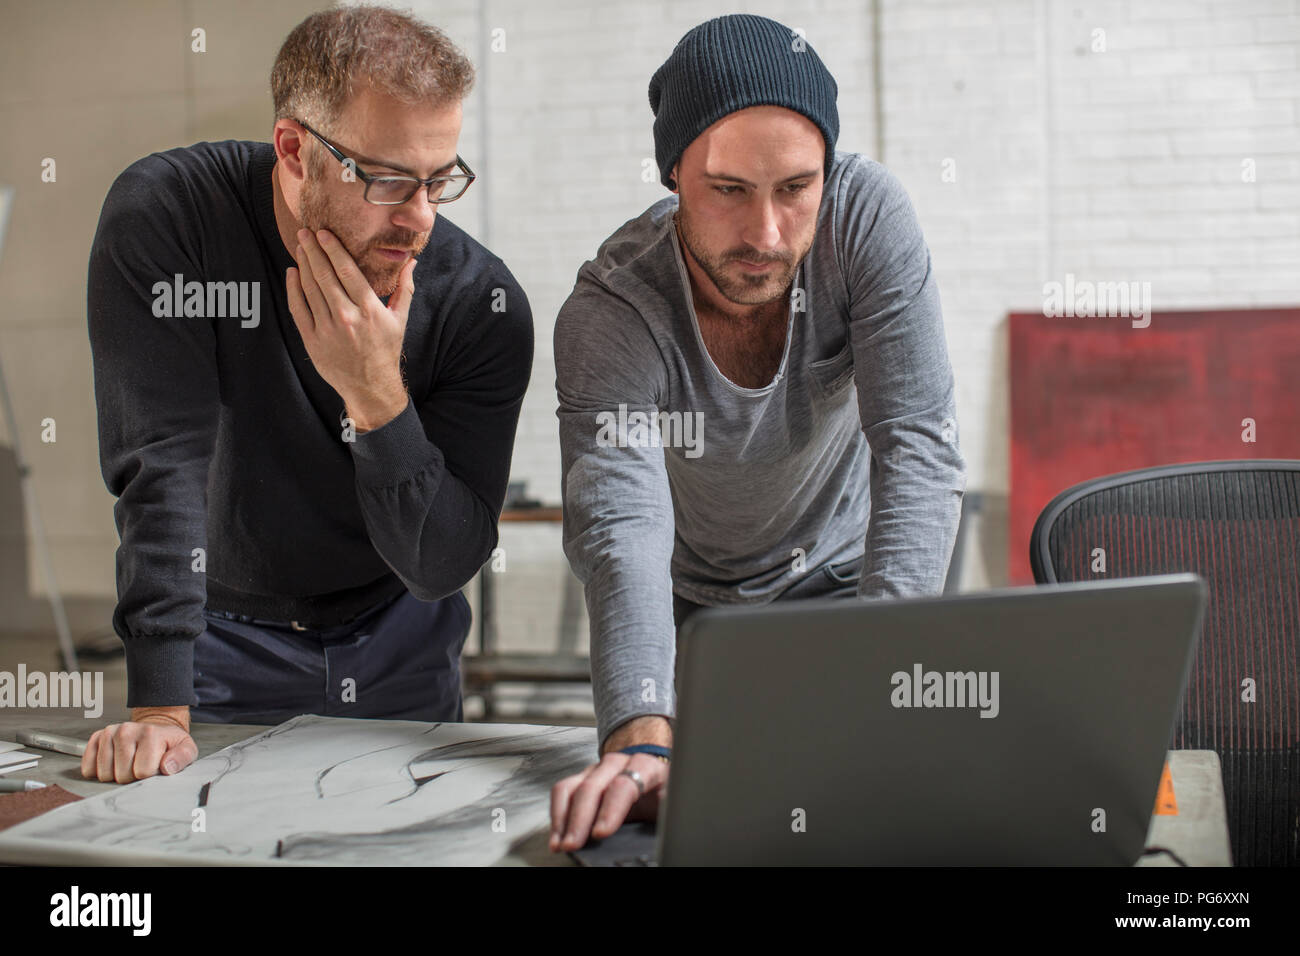 Artist using laptop with man in studio - Stock Image